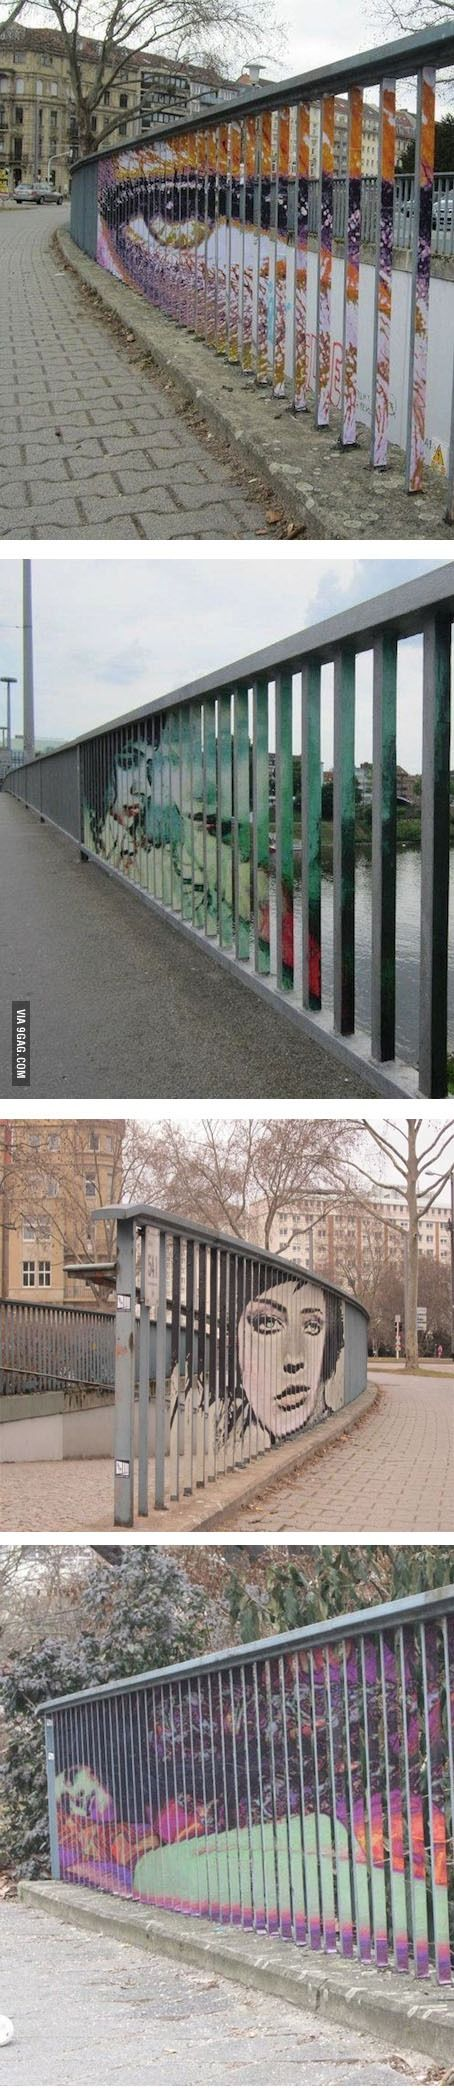 hidden street art on the side of railings only viewable from certain angles                                                                                                                                                                                 More